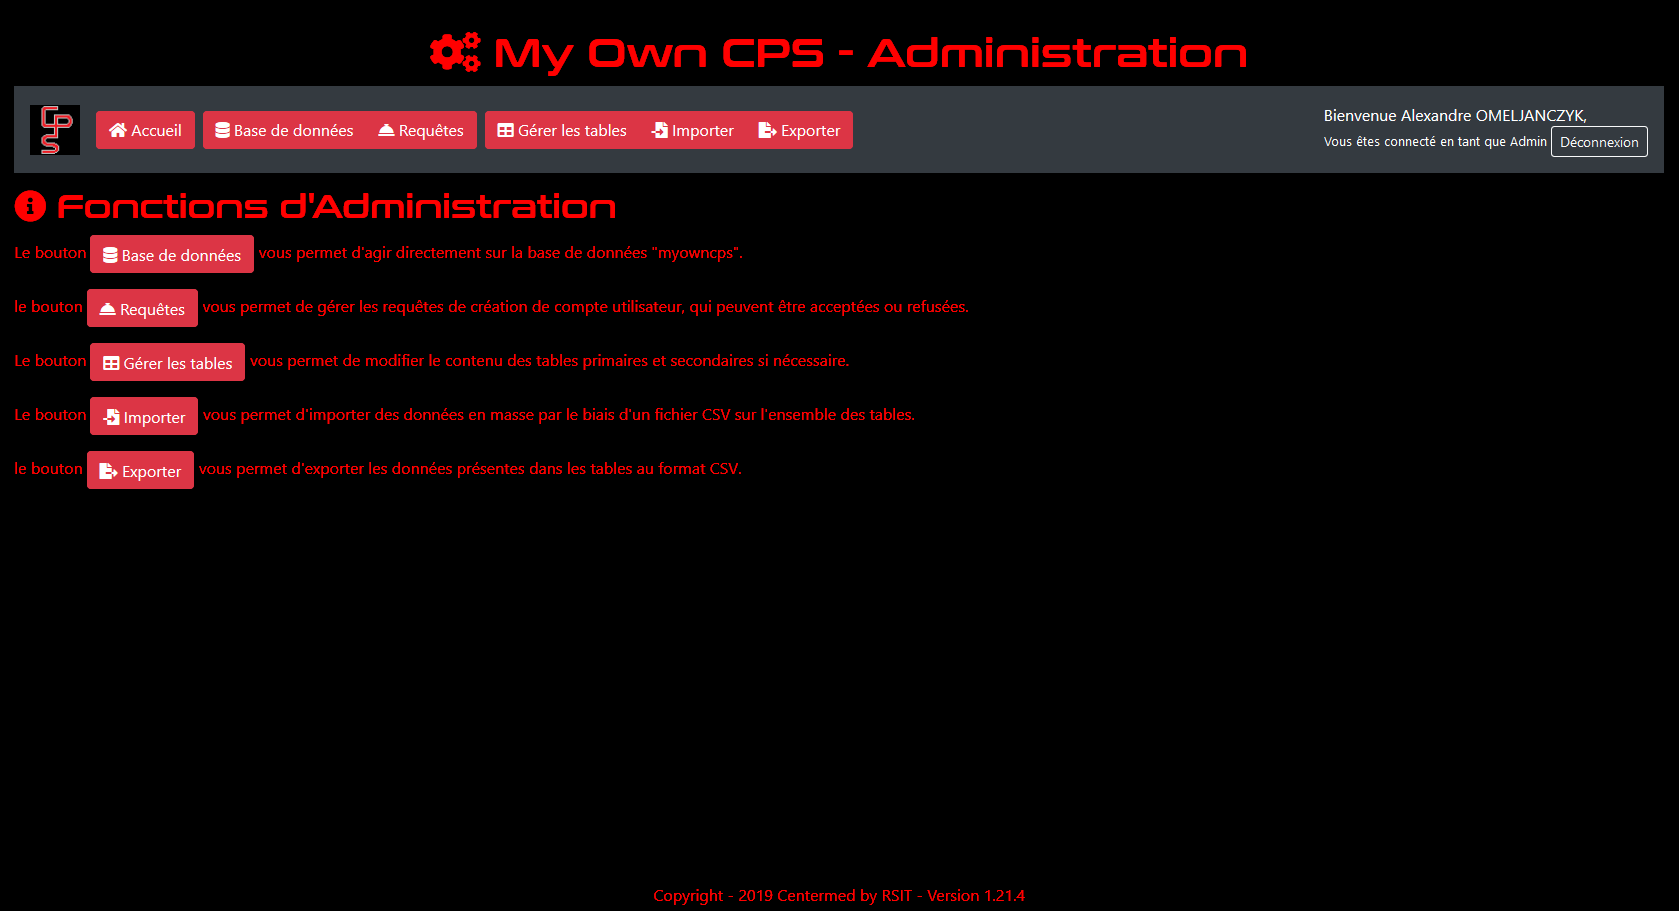 My Own CPS #4